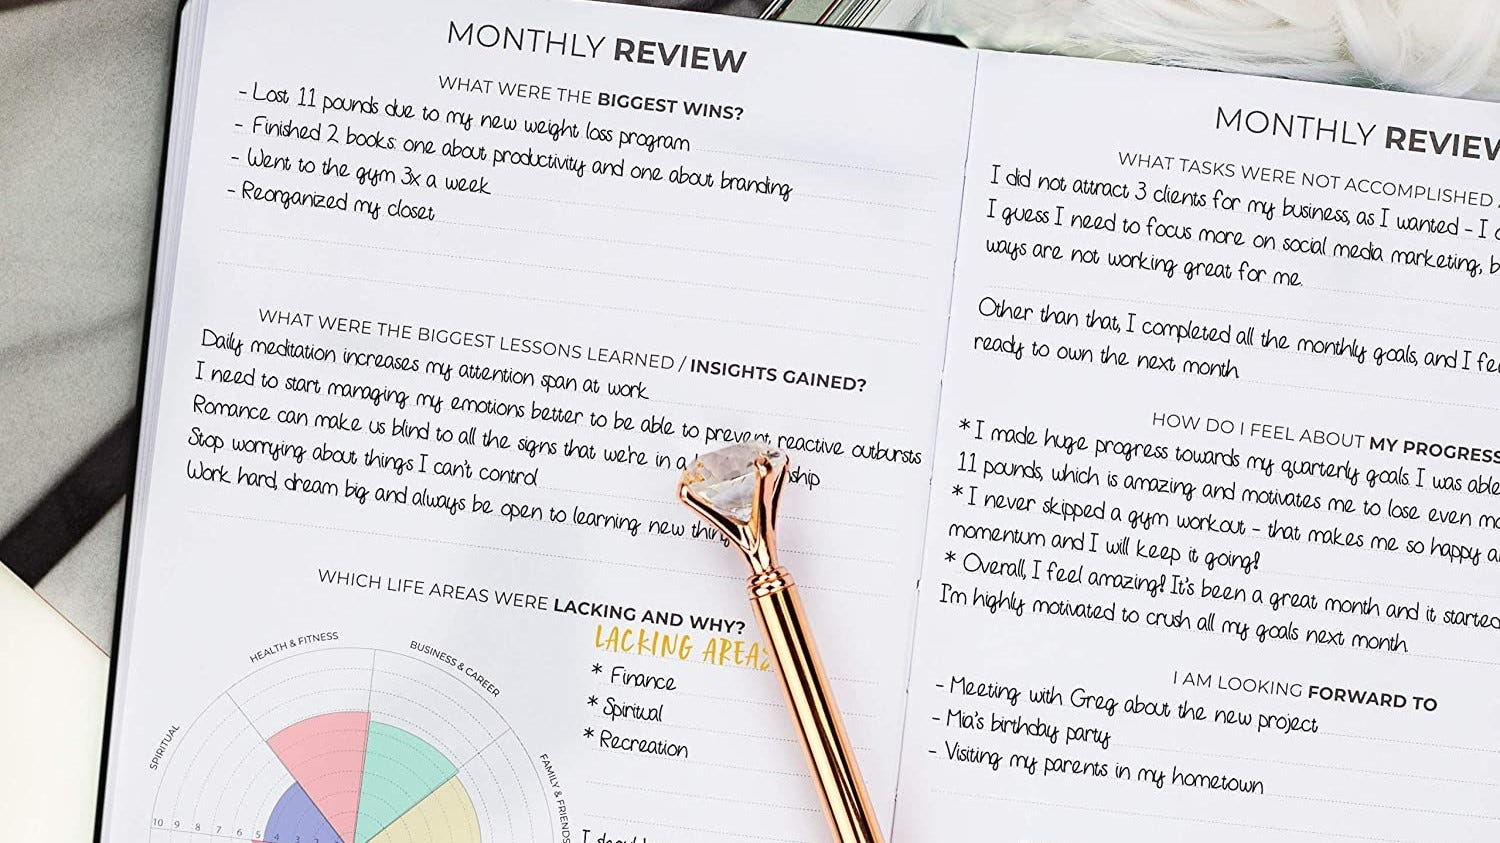 Some entries in the monthly review of a Clever Fox planner.